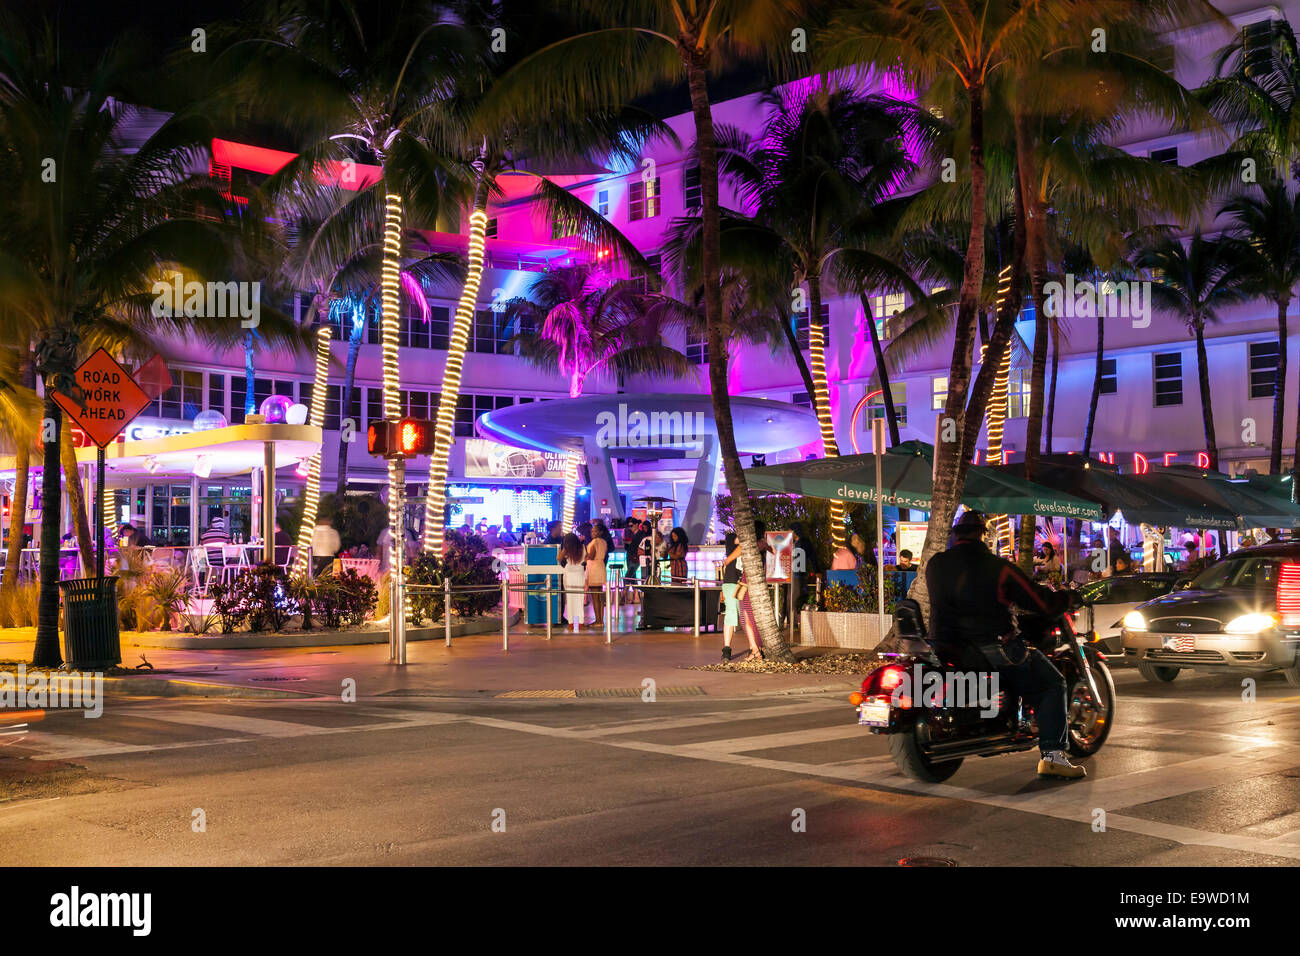 Colorful Lighting Of The Clevelander Hotel And Nightclub